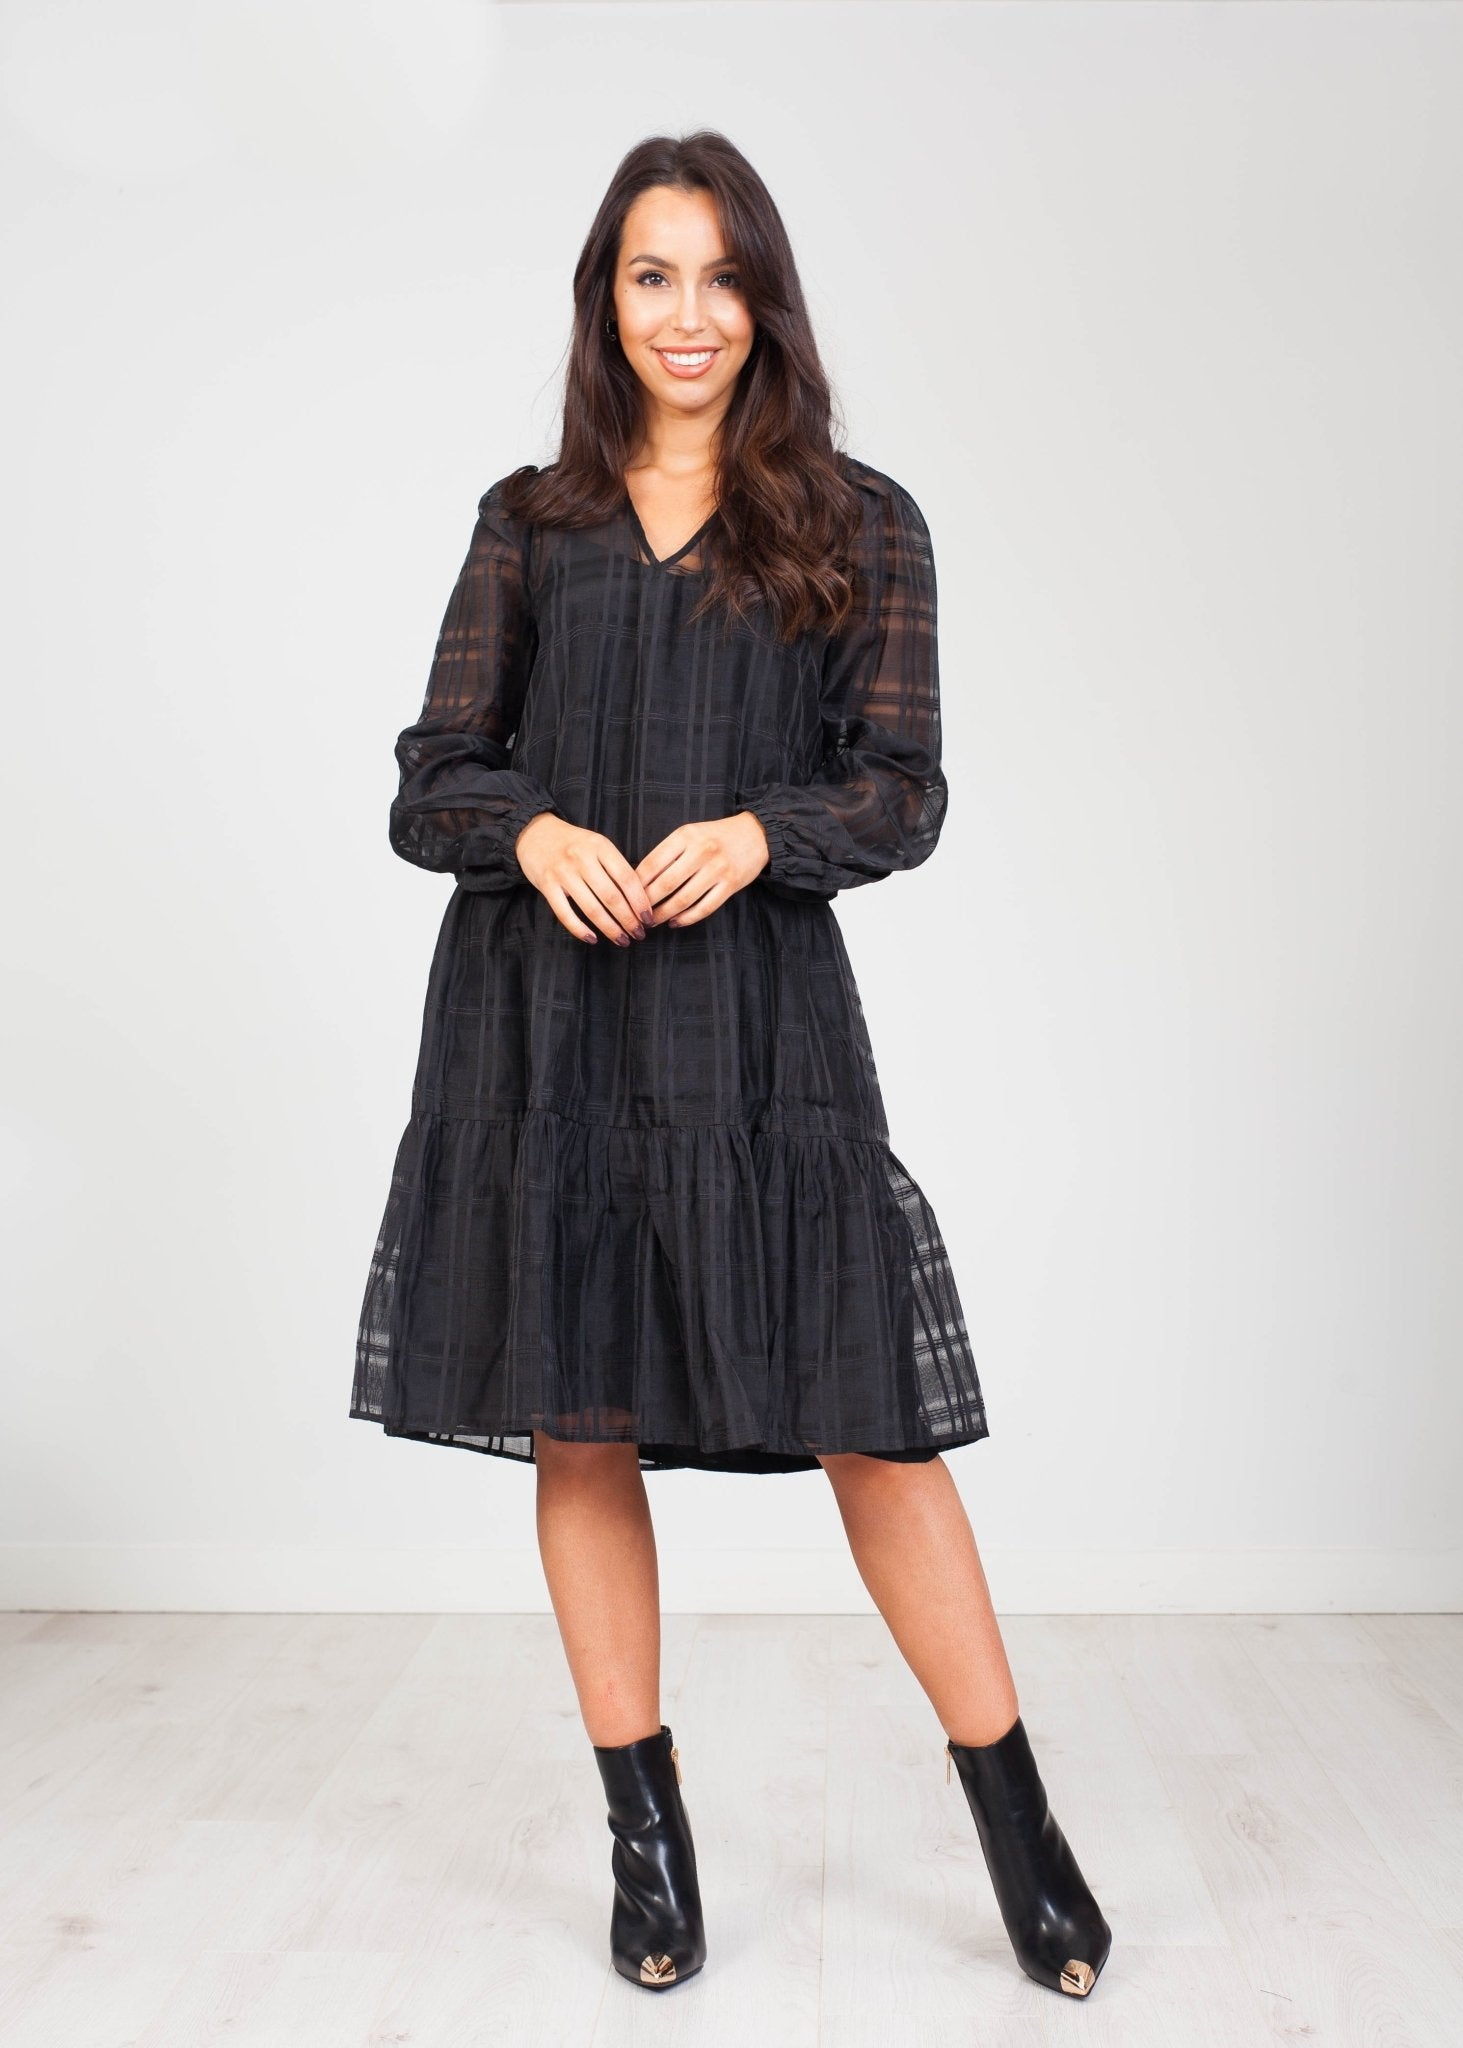 Lottie Tiered Dress in Black - The Walk in Wardrobe